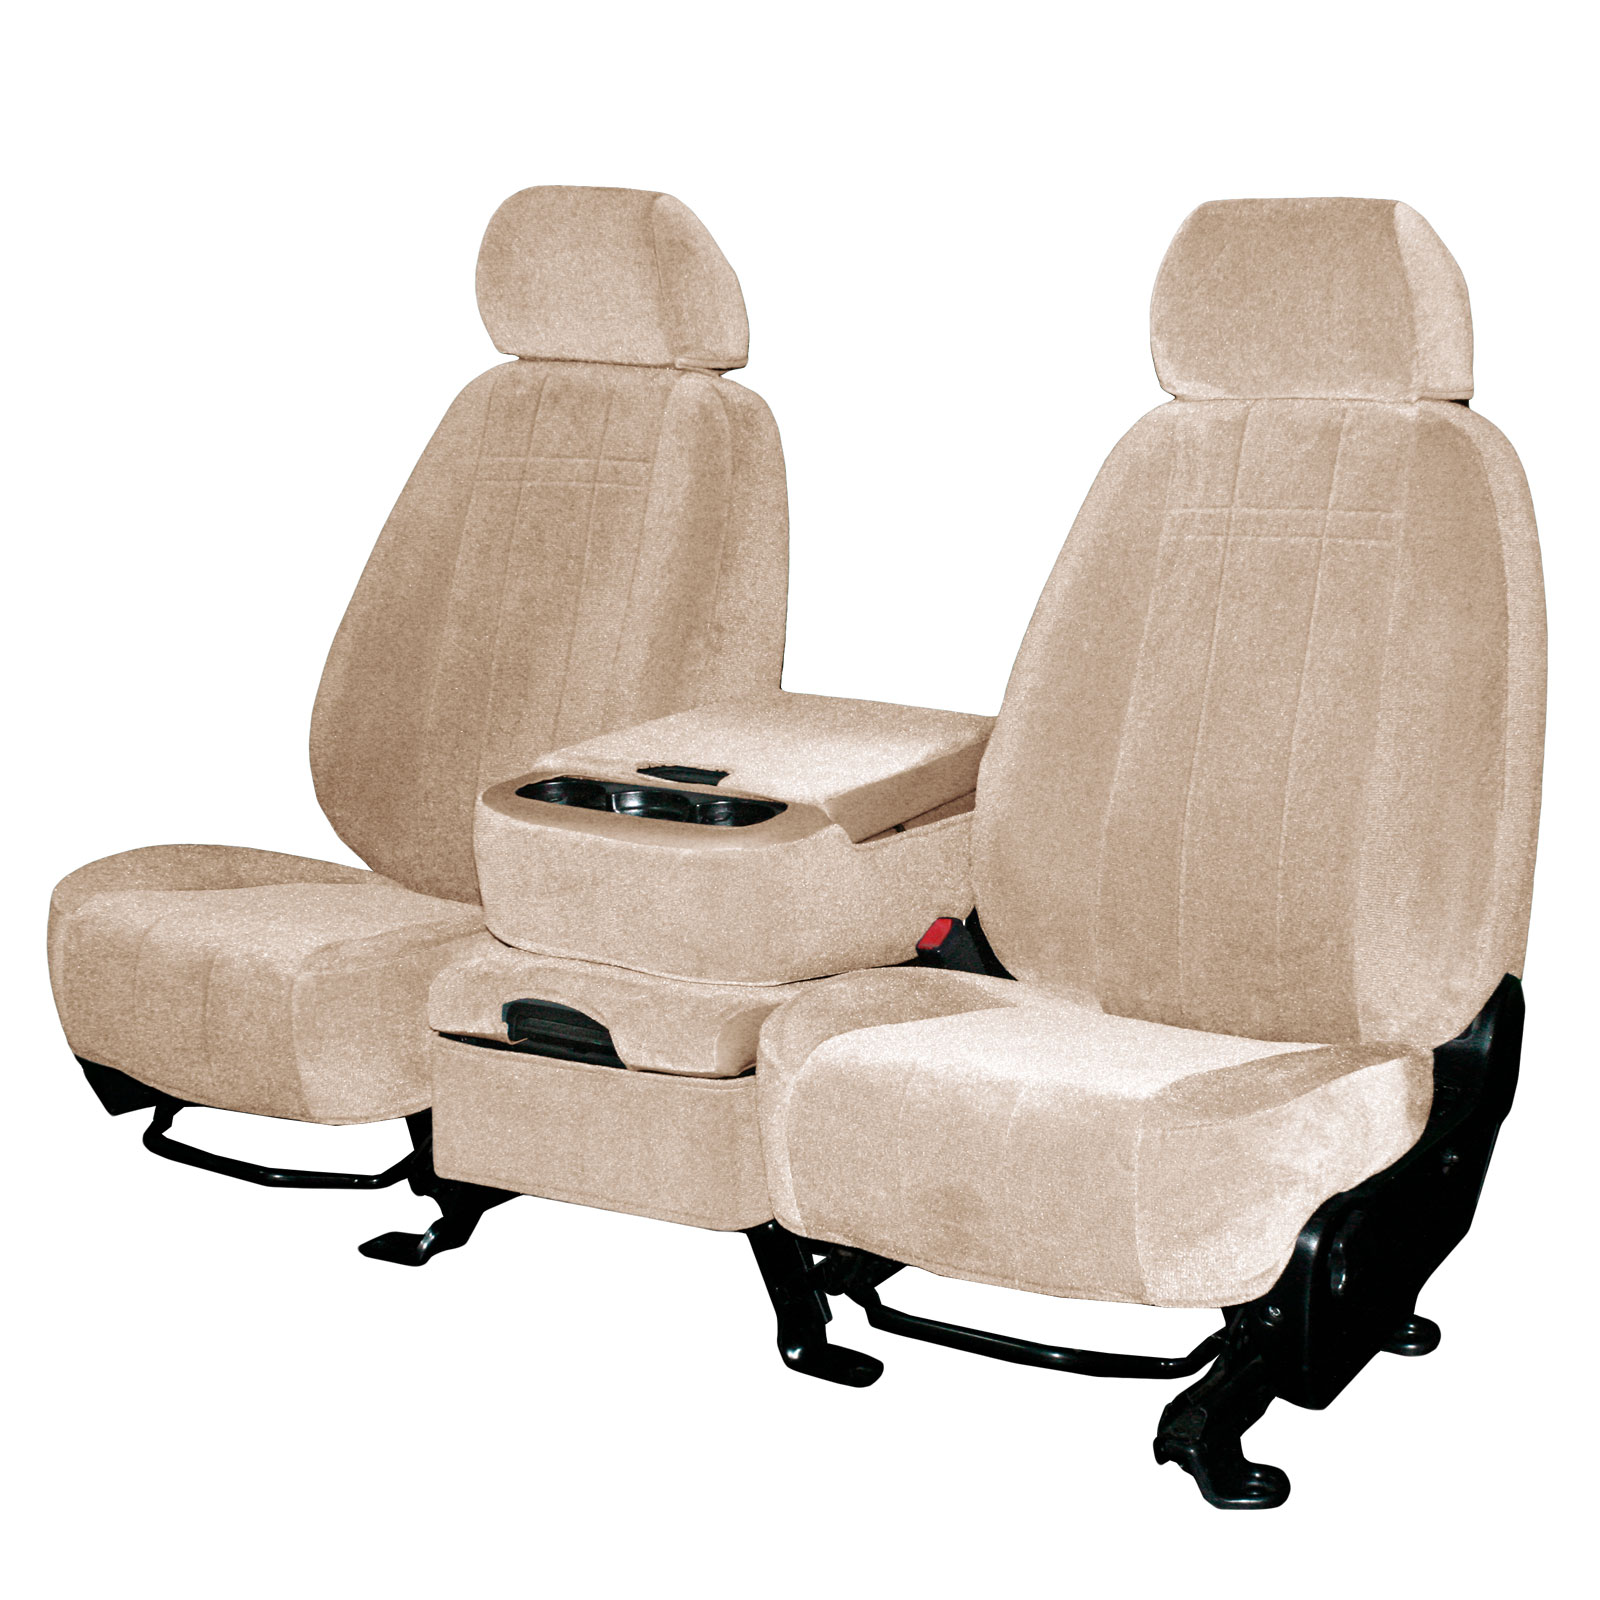 chair cover velour full body massage chairs seat covers cars trucks suvs made in america